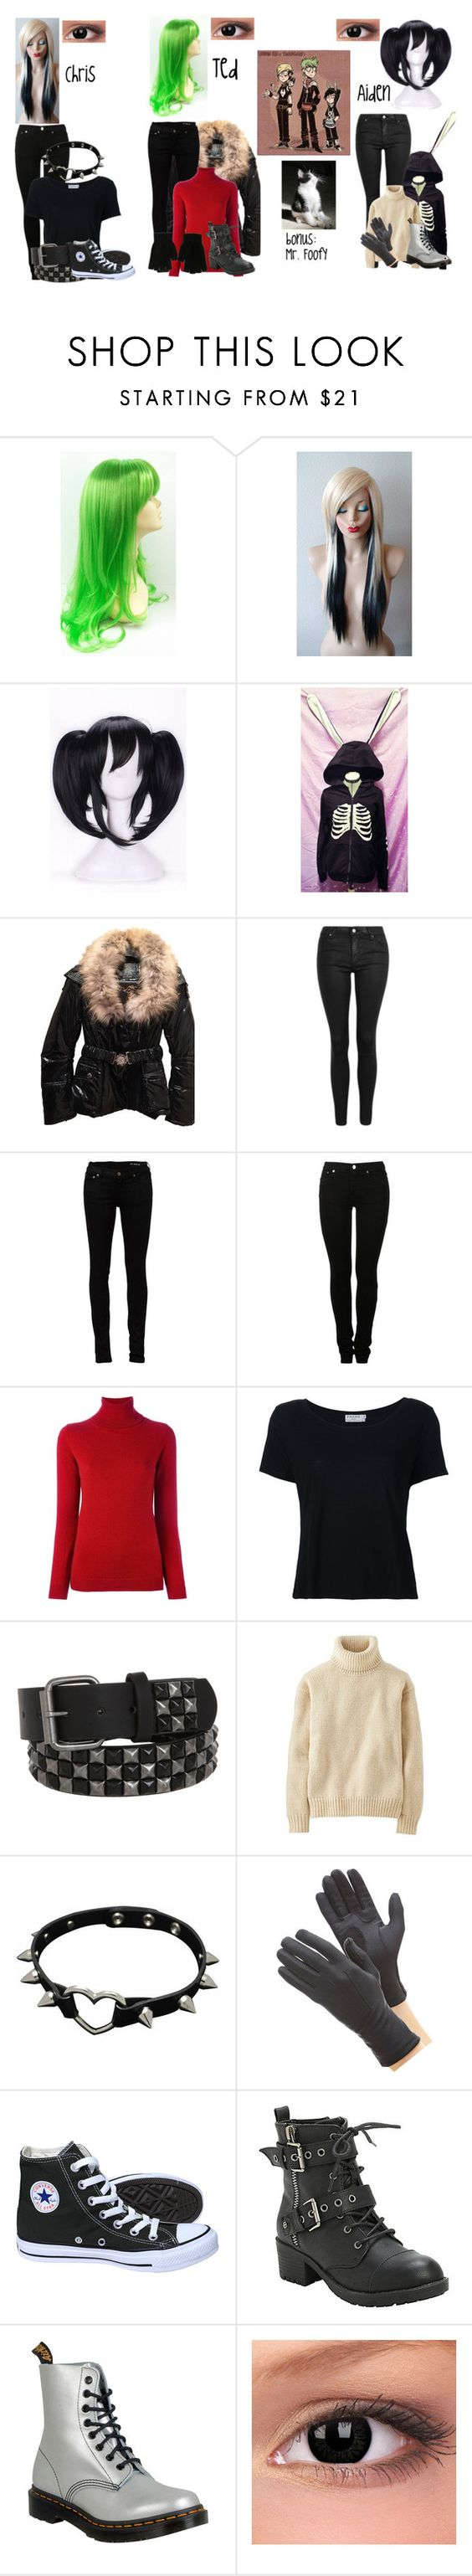 """Urban Kid n Teenagers inspired set"" by nebulaprime ❤ liked on Polyvore featuring beauty, Just Cavalli, Topshop, Yves Saint Laurent, MM6 Maison Margiela, Allude, Frame, Uniqlo, Isotoner and Converse"